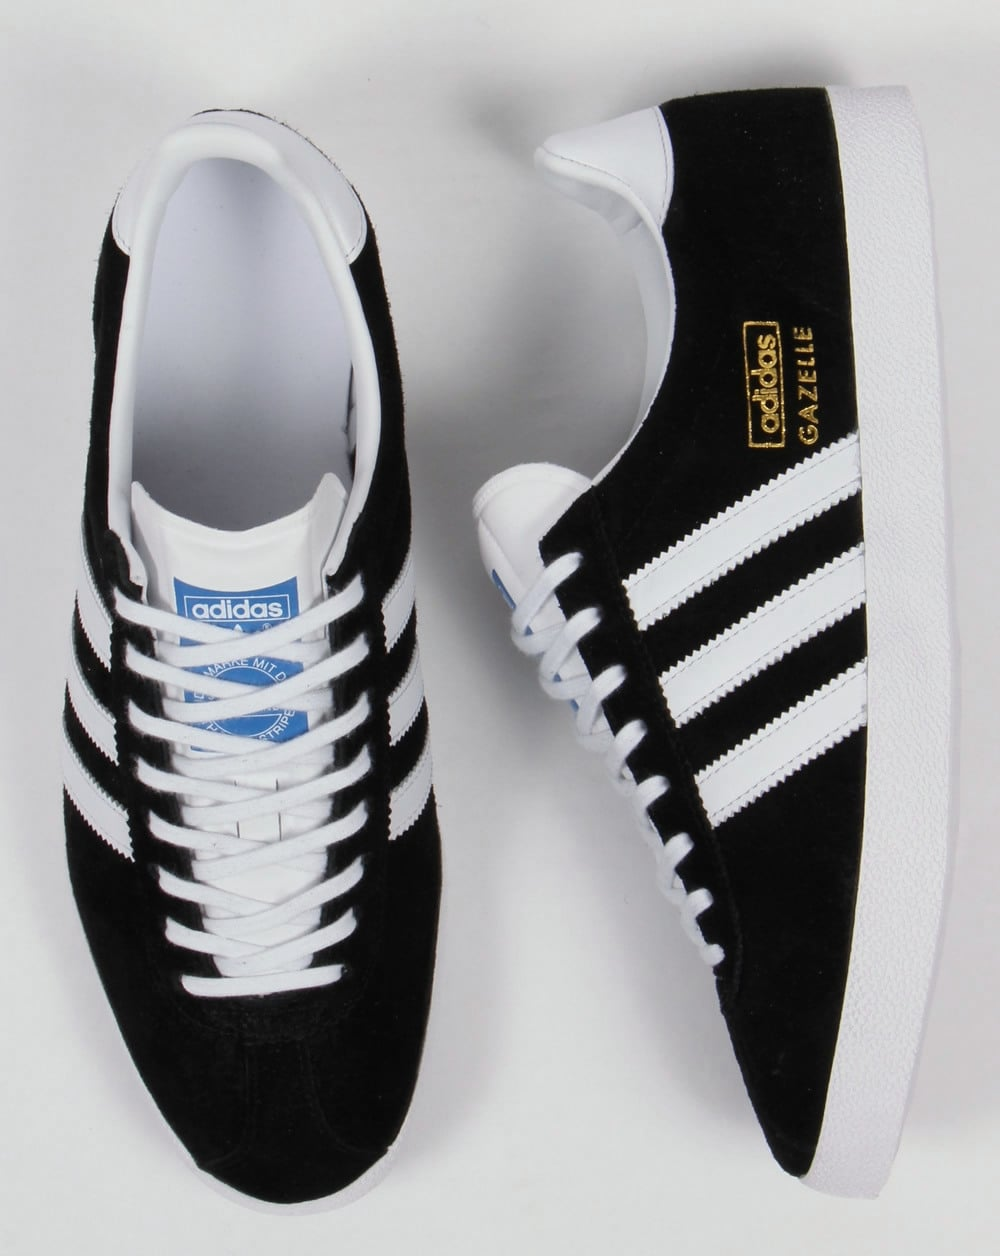 adidas nmd r1 white womens adidas originals gazelle og leather black gold